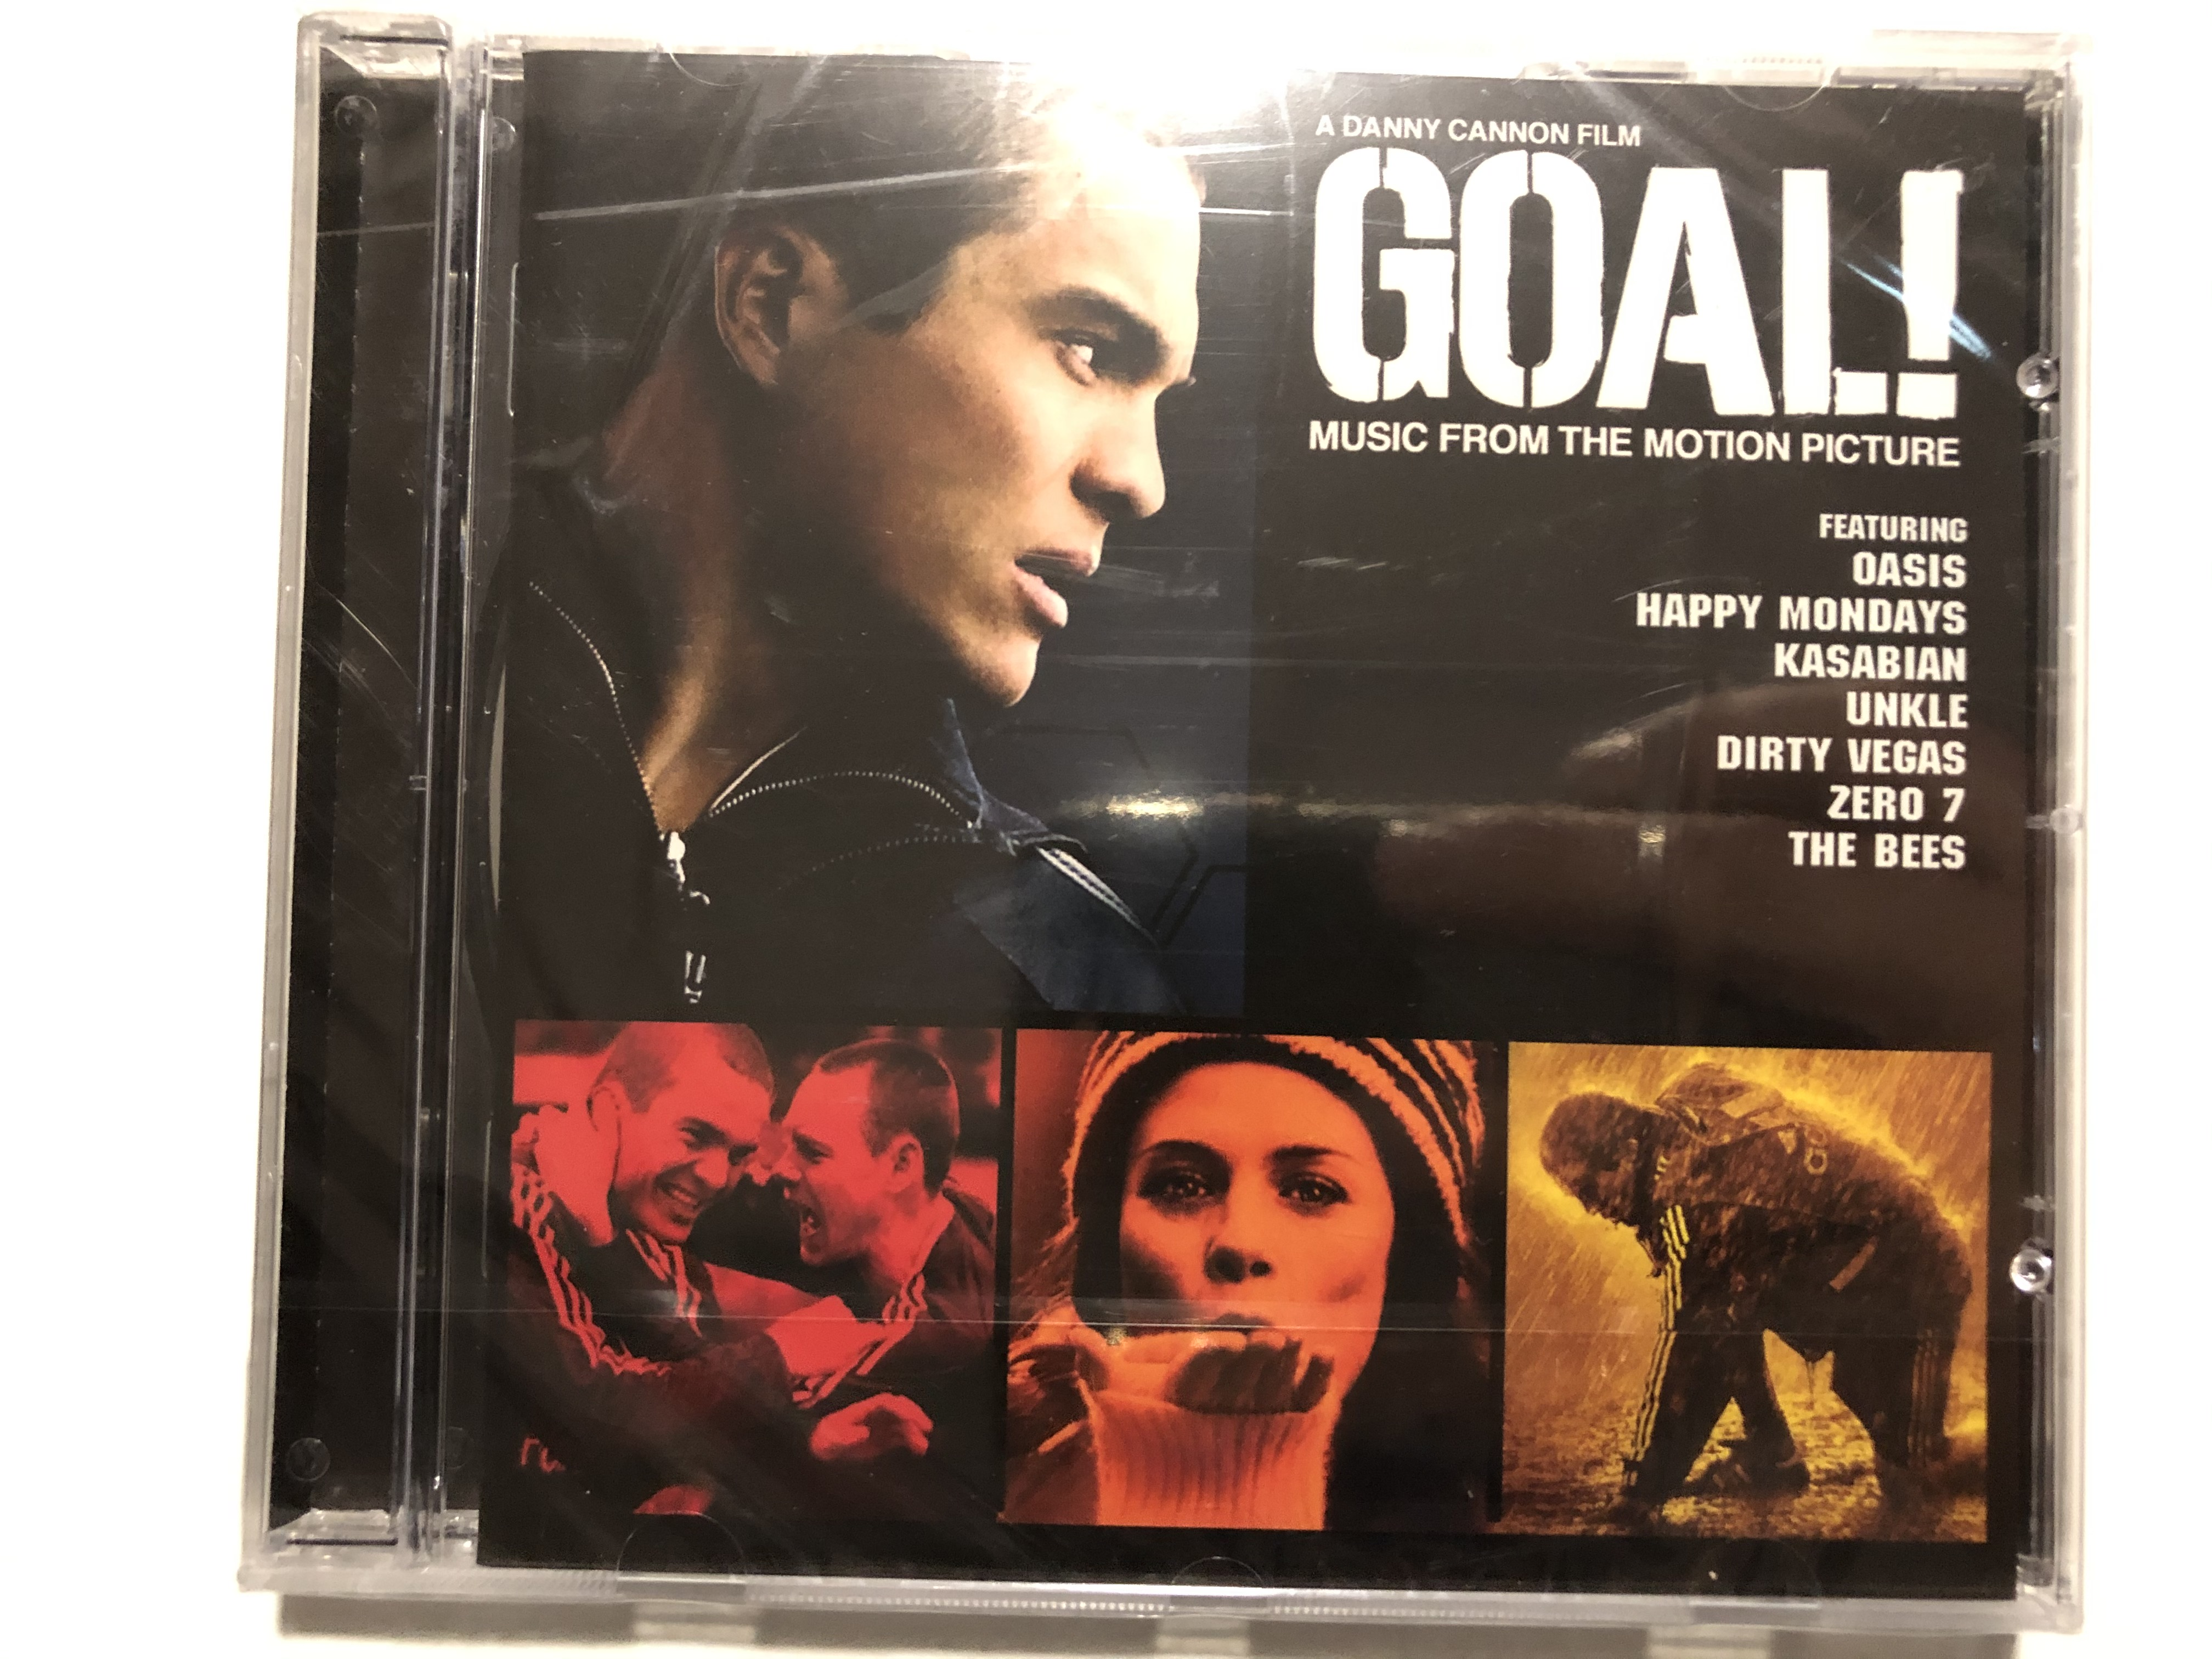 a-danny-cannon-film-goal-music-from-the-motion-picture-featuring-oasis-happy-mondays-kasabian-unkle-dirty-vegas-zero-7-the-bees-big-brother-audio-cd-2005-82876-743522-1-.jpg